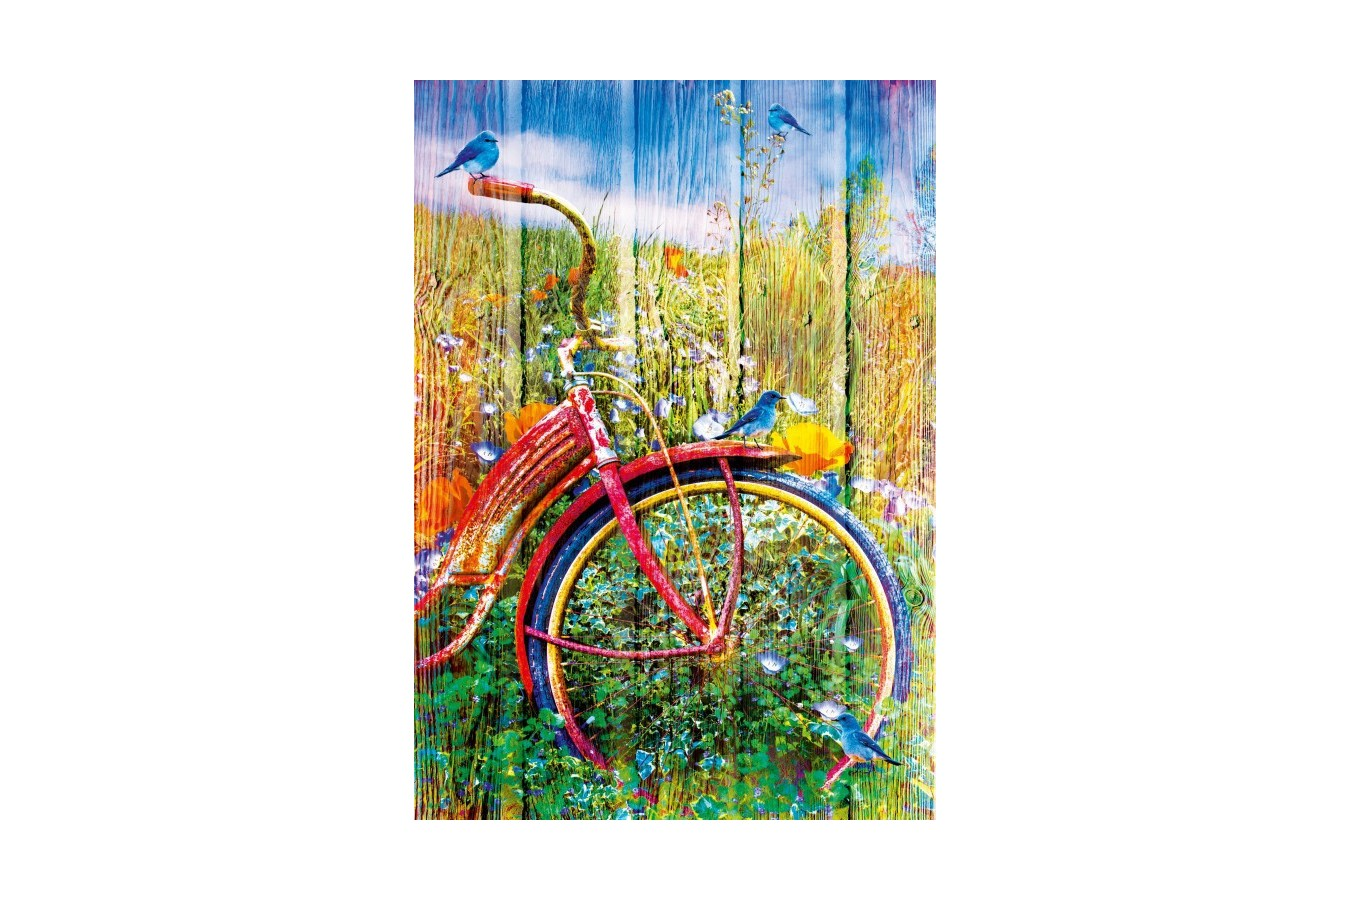 Puzzle Bluebird - Bluebirds on a Bicycle, 1.000 piese (70300-P) imagine